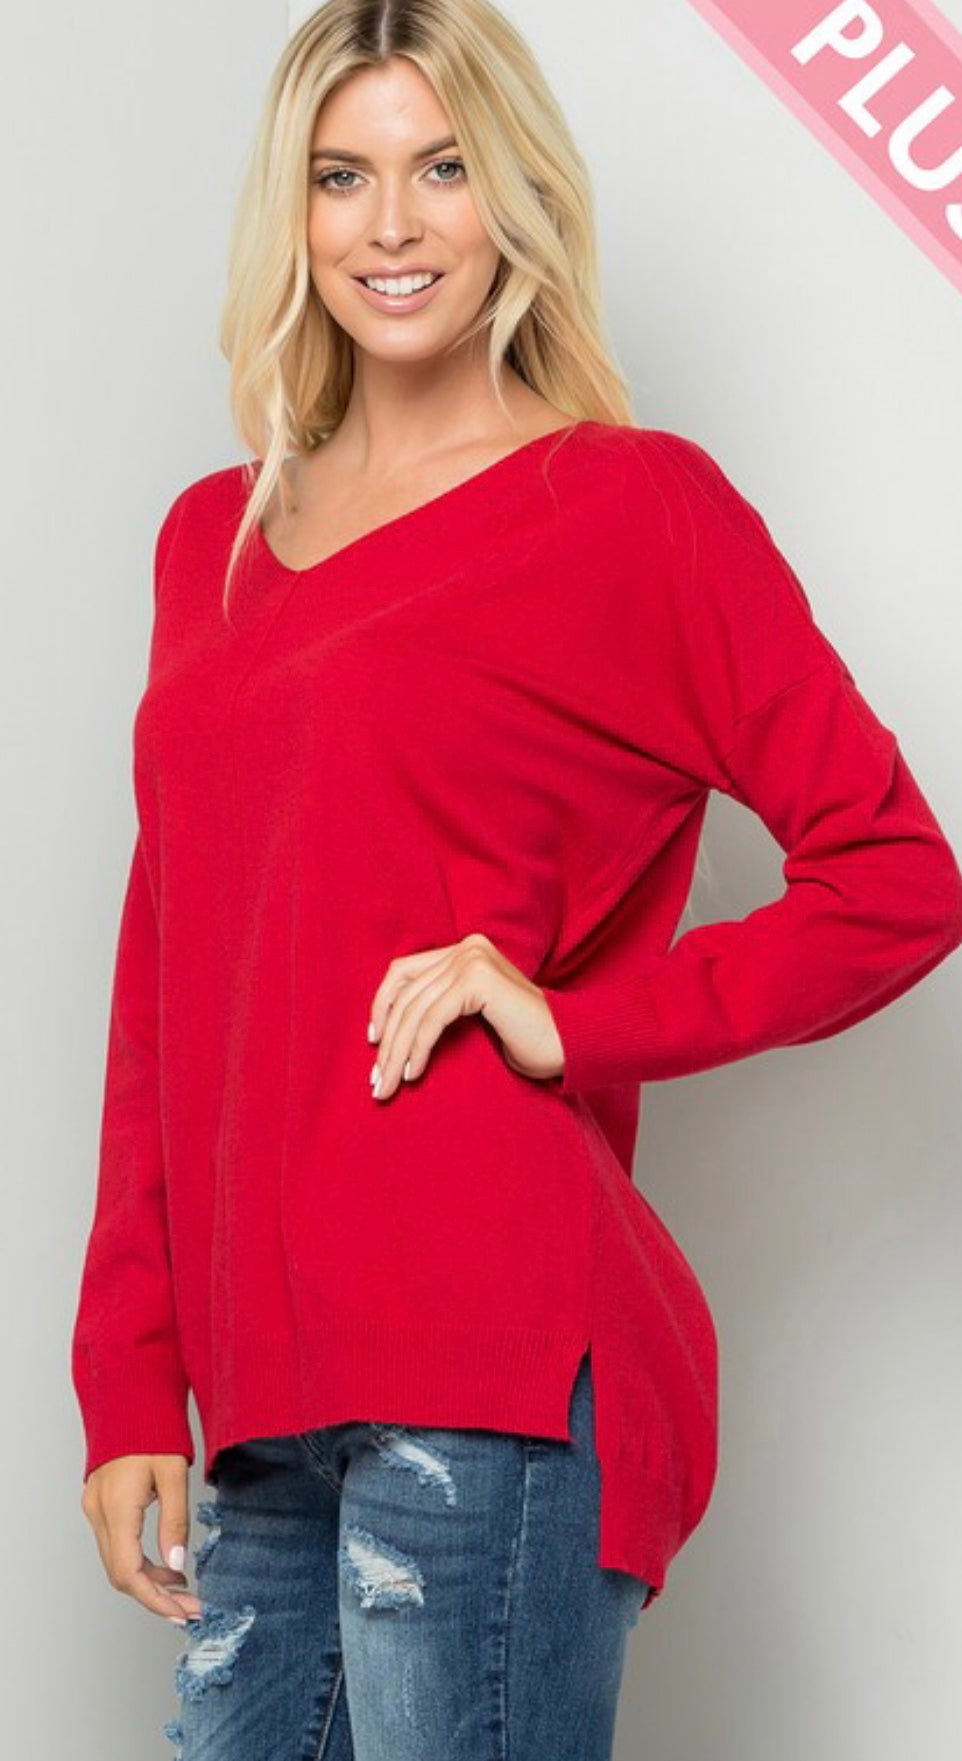 Cozy Knit Red Sweater with Free Shipping